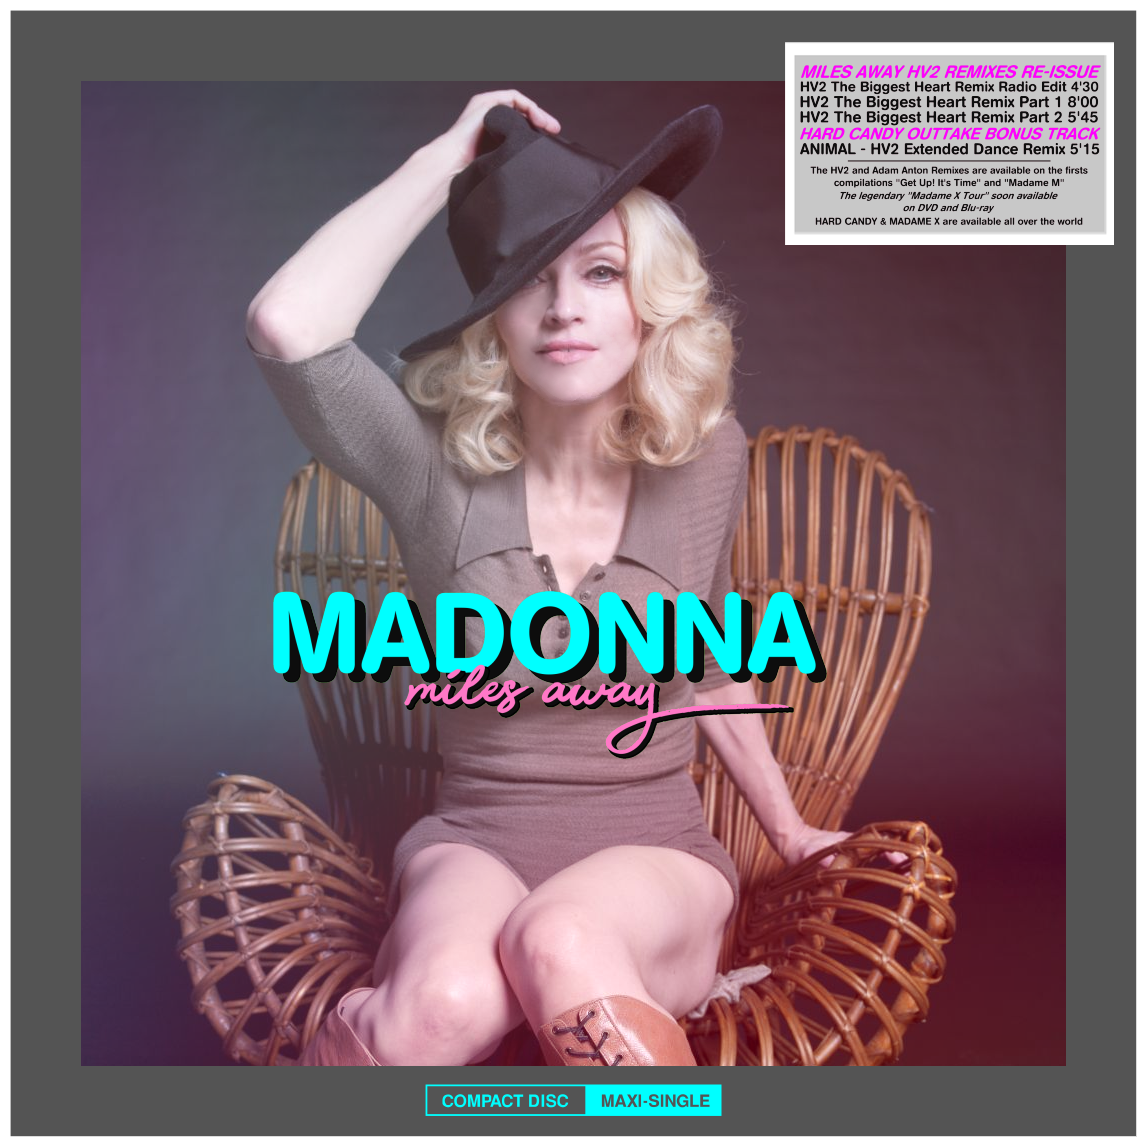 MADONNA - MILES AWAY [HV2 REMIXES EP]  01 - Miles Away [HV2 The Biggest Heart Remix Radio Edit] 4'30  02 -  Miles Away [HV2 The Biggest Heart Remix Part 1] 8'00  03 -  Miles Away [HV2 The Biggest Heart Remix Part 2] 5'45  04 -  Animal [HV2 Extended Dance Remix] 5'15  Total Timing: 23'31 - Bitrate: 320 Kbps (mp3) - File: 54 Mo - Remix Production: HV2 & Adam Anton - Artworks: Adam Anton - Original Production March 23rd 2011 - Re-issue August 12nd 2020 - Promotional Copy - Must never be sold - Buy originals Madonna's music